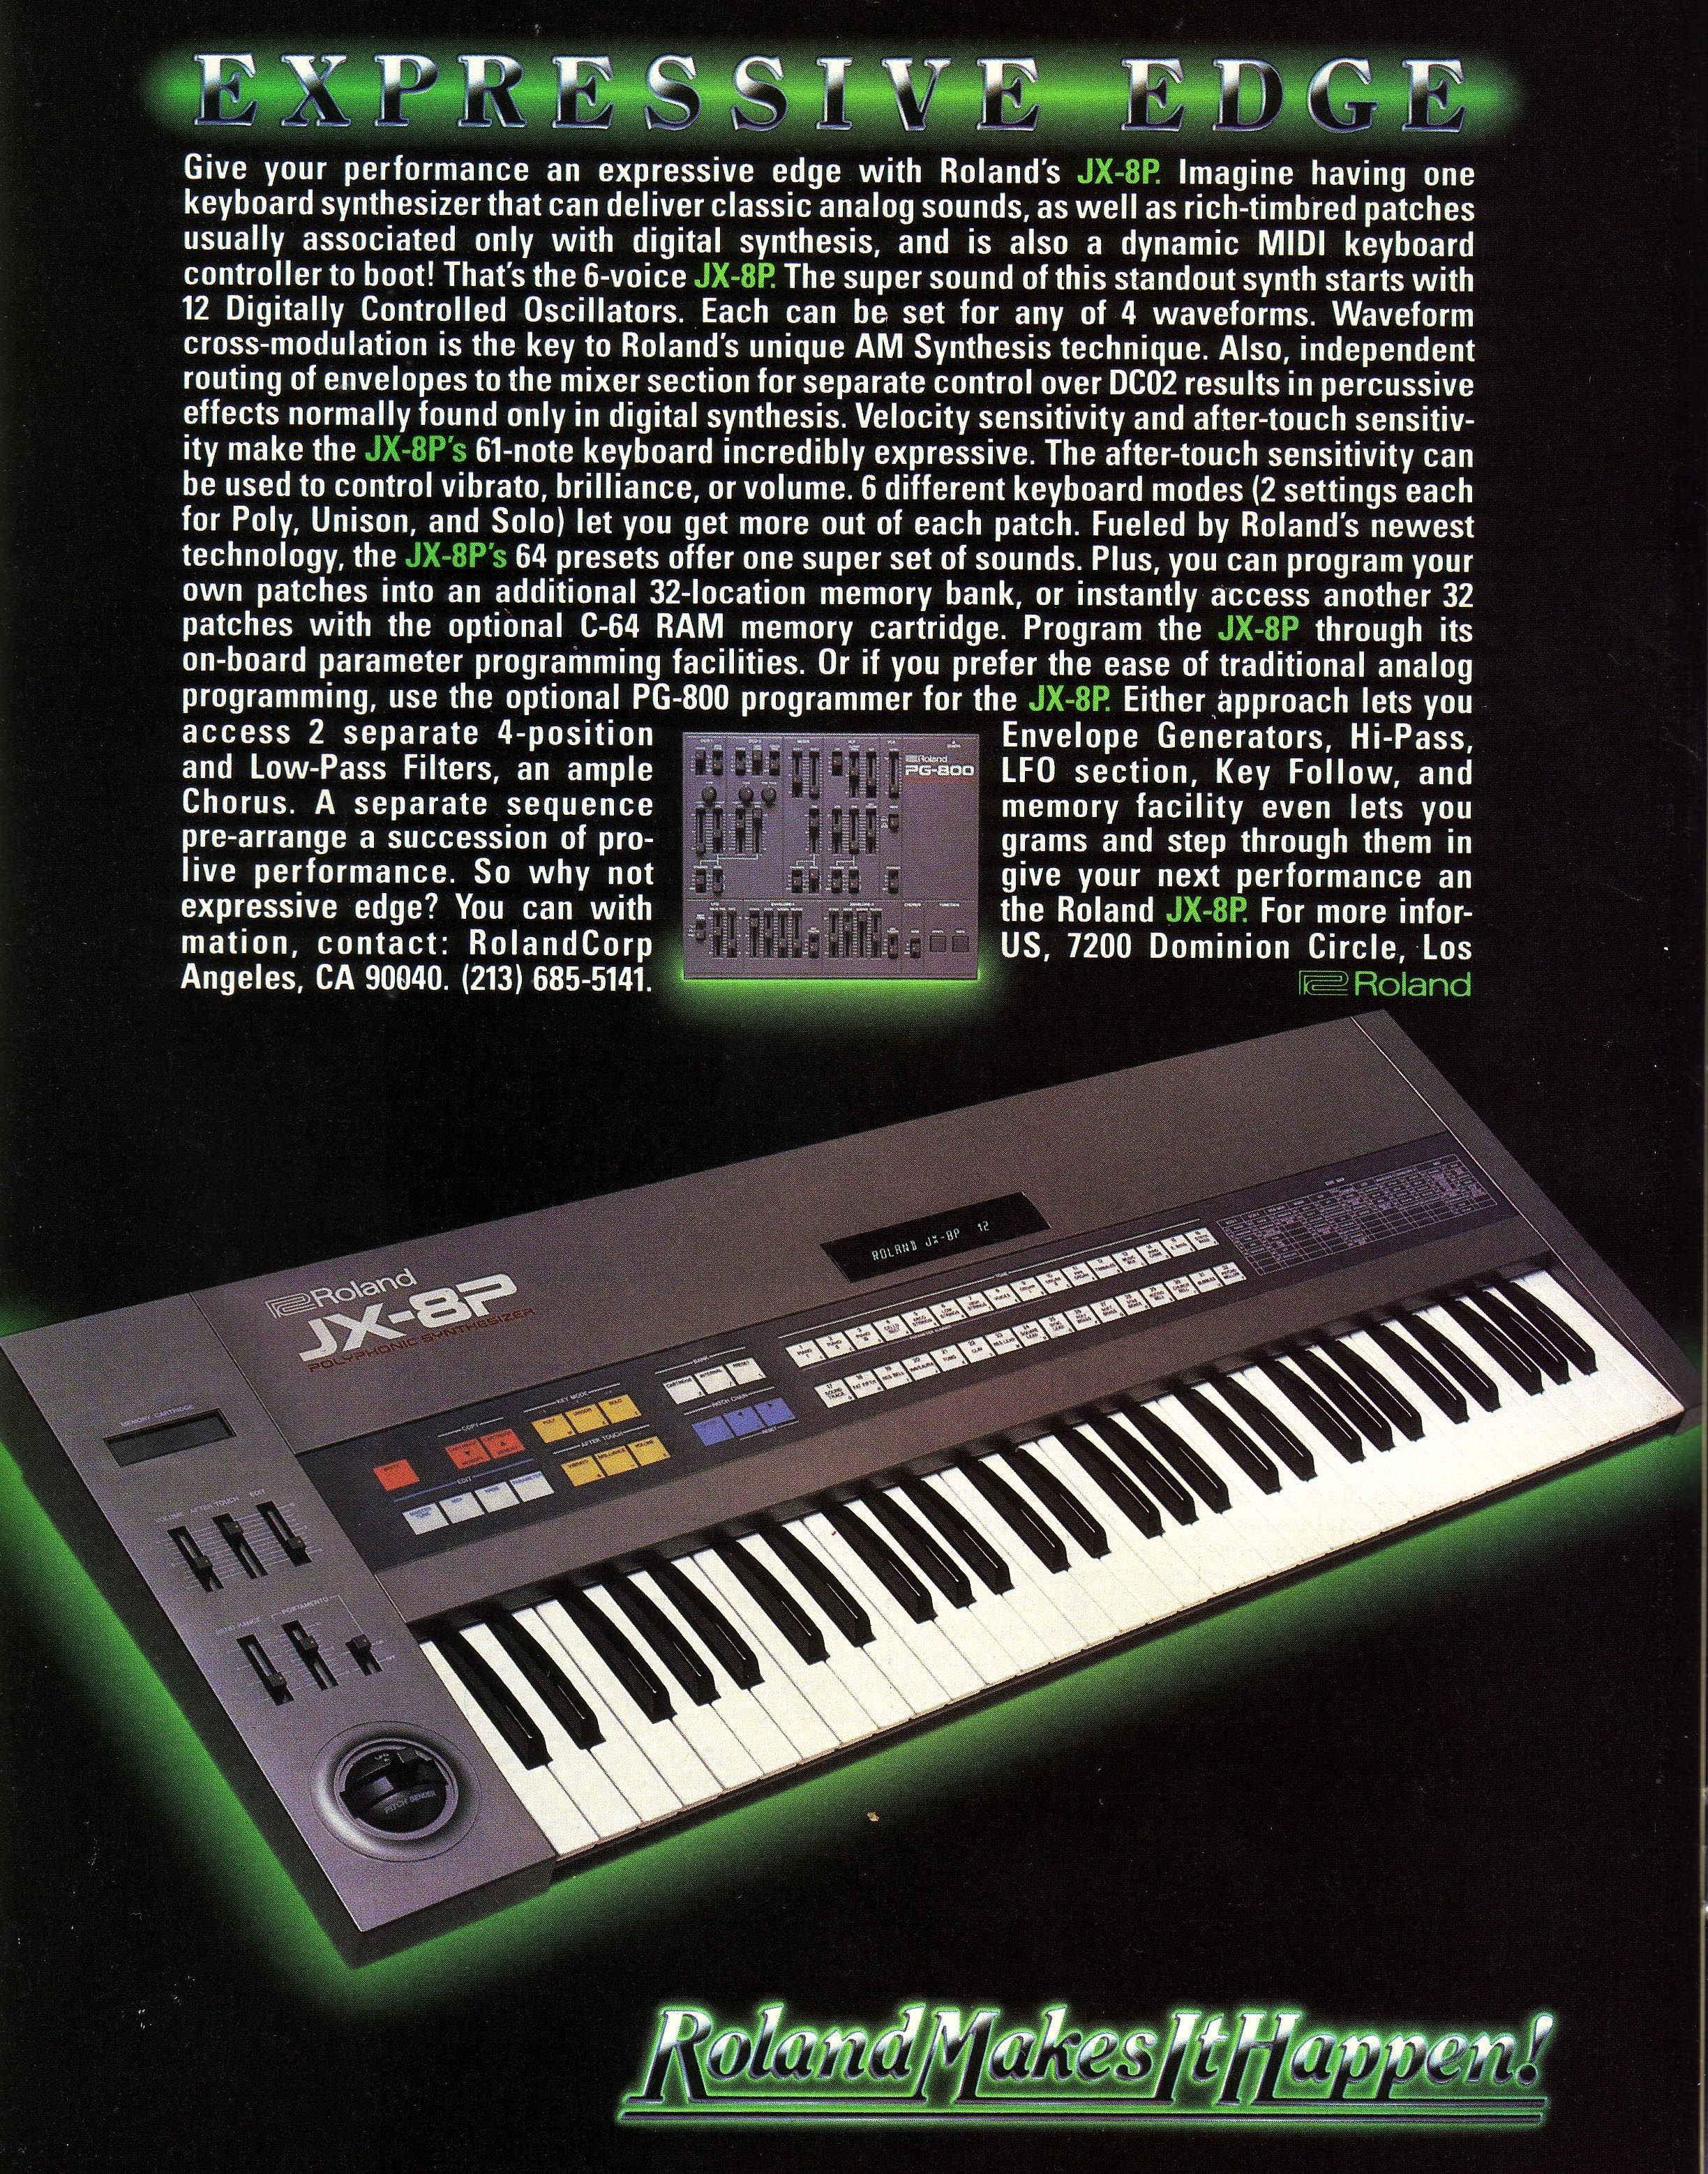 Pin by D on ROLAND!!!!!! in 2019 | Synthesizer music, Keyboard piano